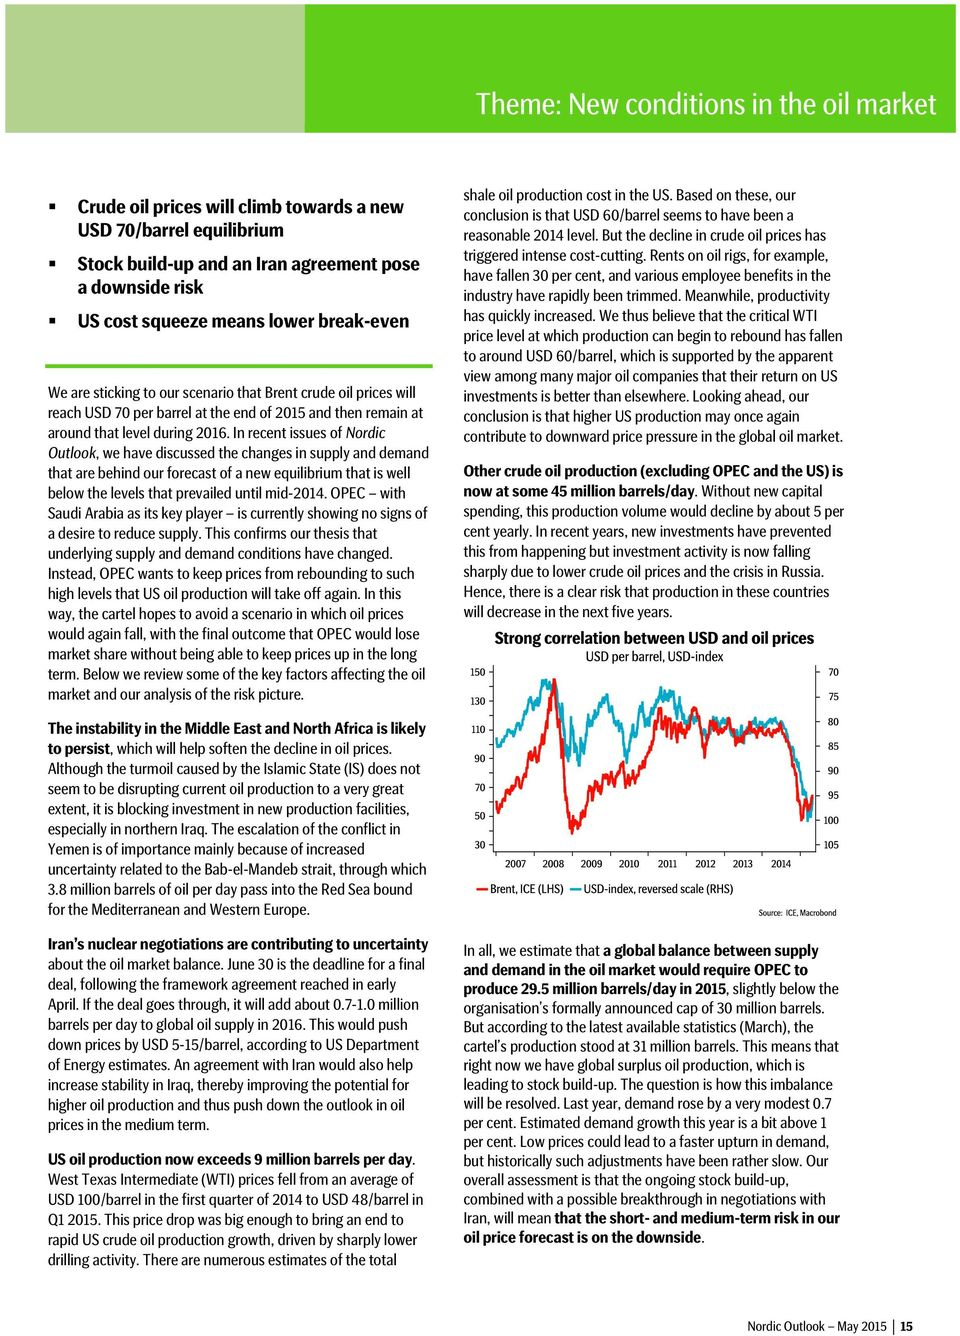 In recent issues of Nordic Outlook, we have discussed the changes in supply and demand that are behind our forecast of a new equilibrium that is well below the levels that prevailed until mid-2014.